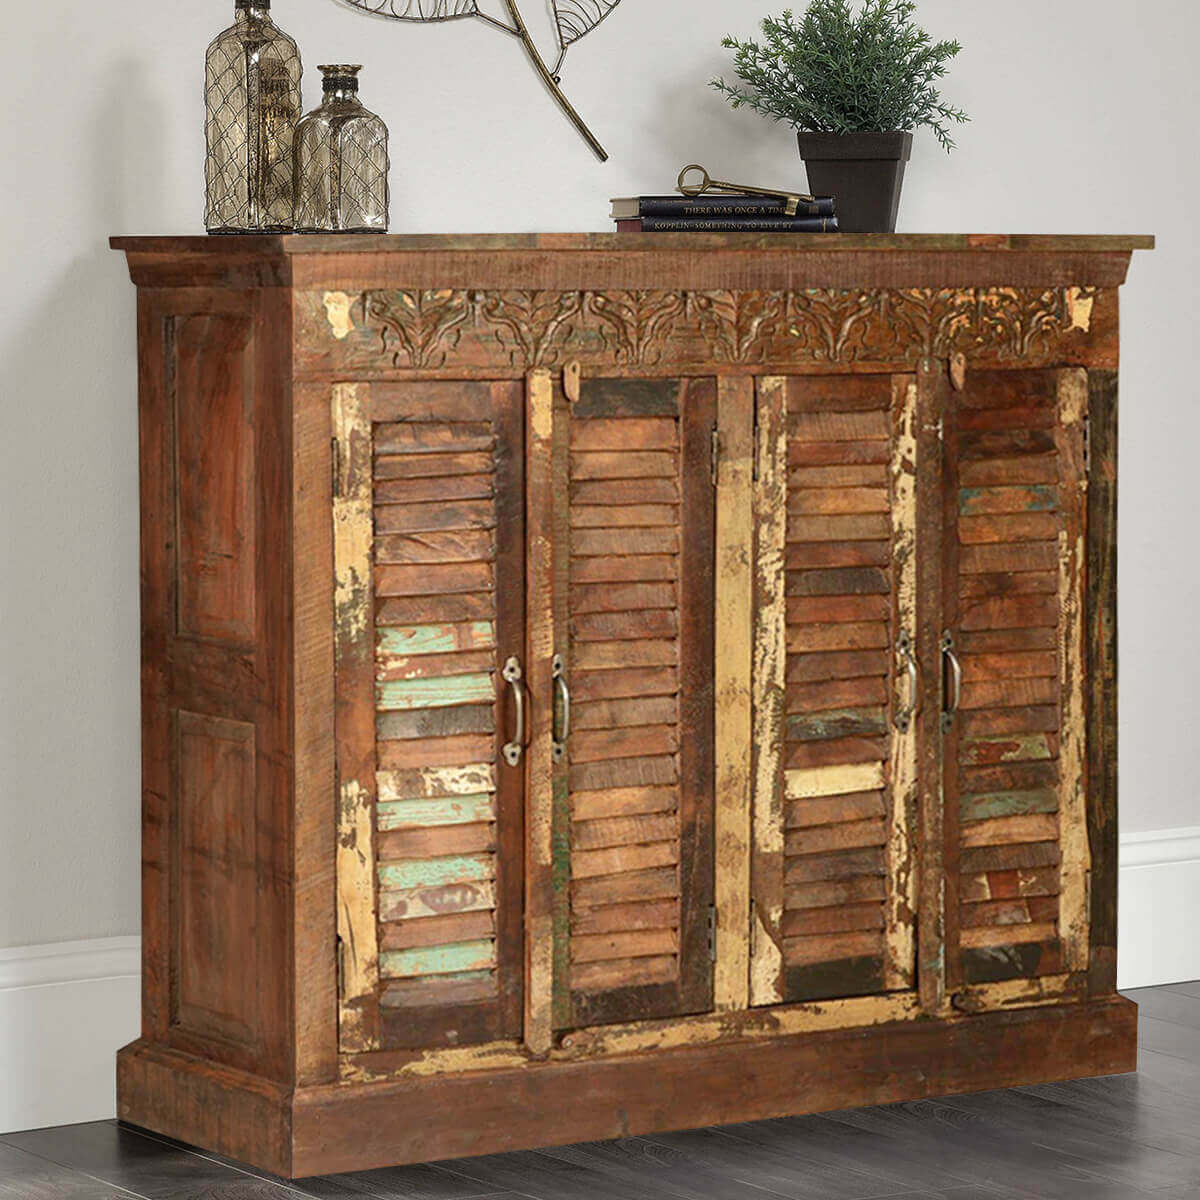 Very Impressive portraiture of Shutter Door Rustic Reclaimed Wood Sideboard Buffet Distressed Cabinet with #BD830E color and 1200x1200 pixels